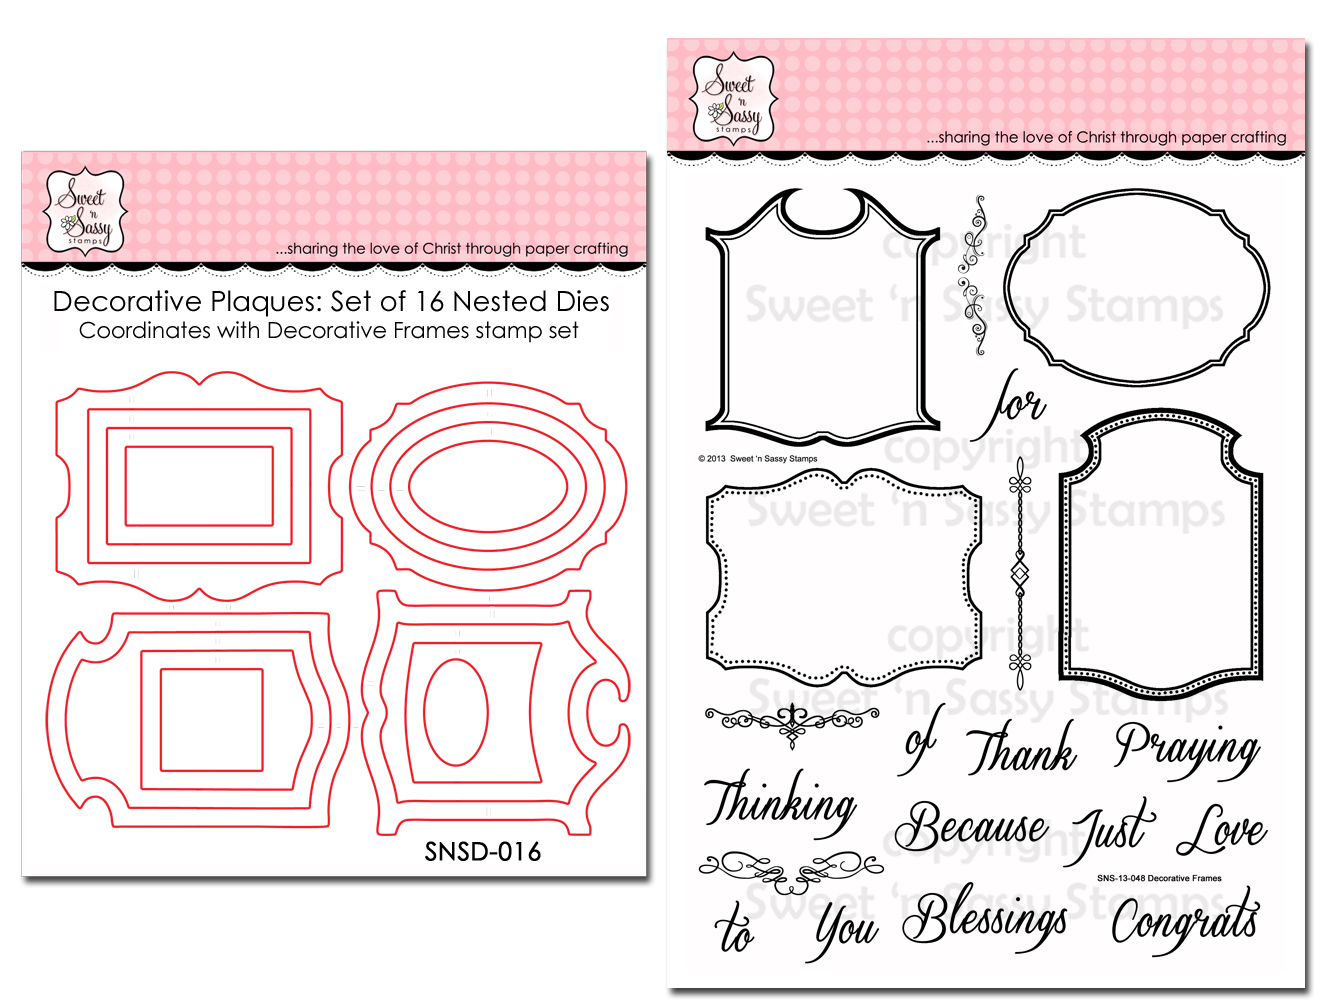 http://www.sweetnsassystamps.com/sweet-perks-club-decorative-frames-bundle/